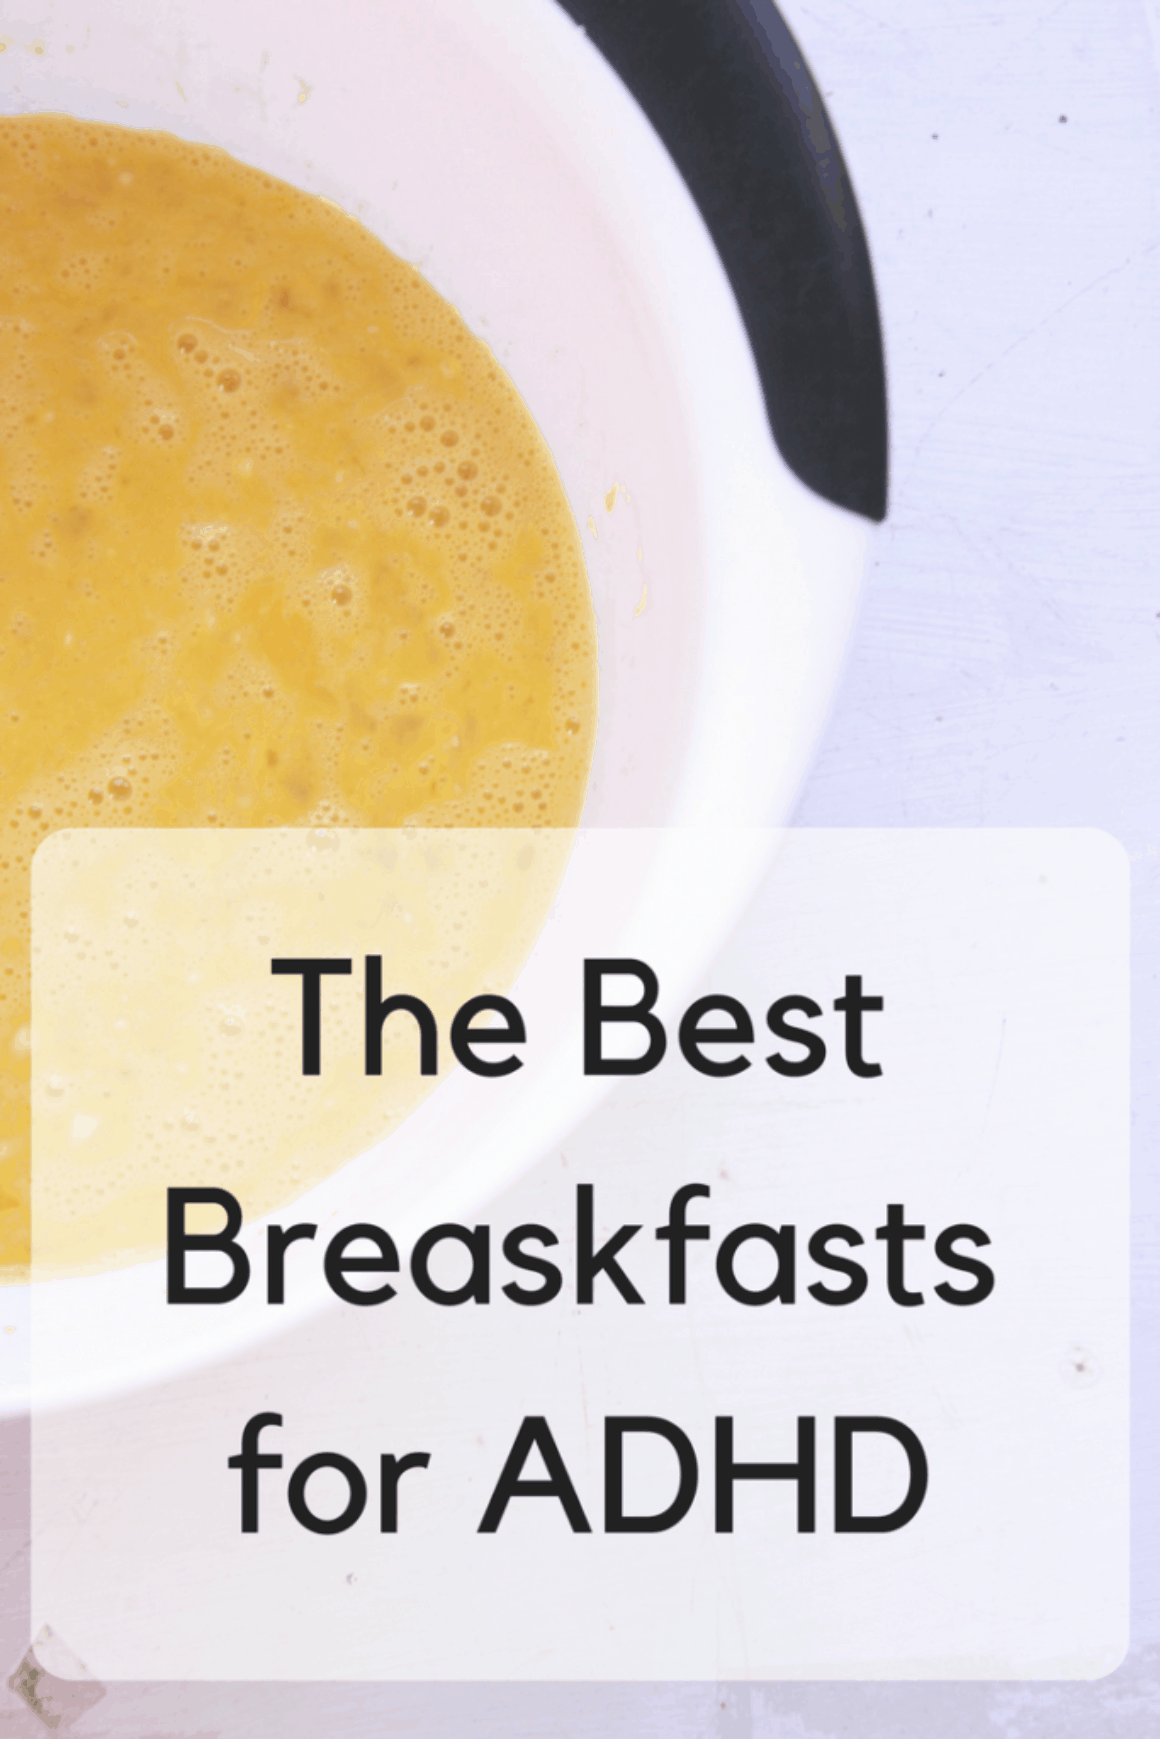 The Best Breakfasts for ADHD